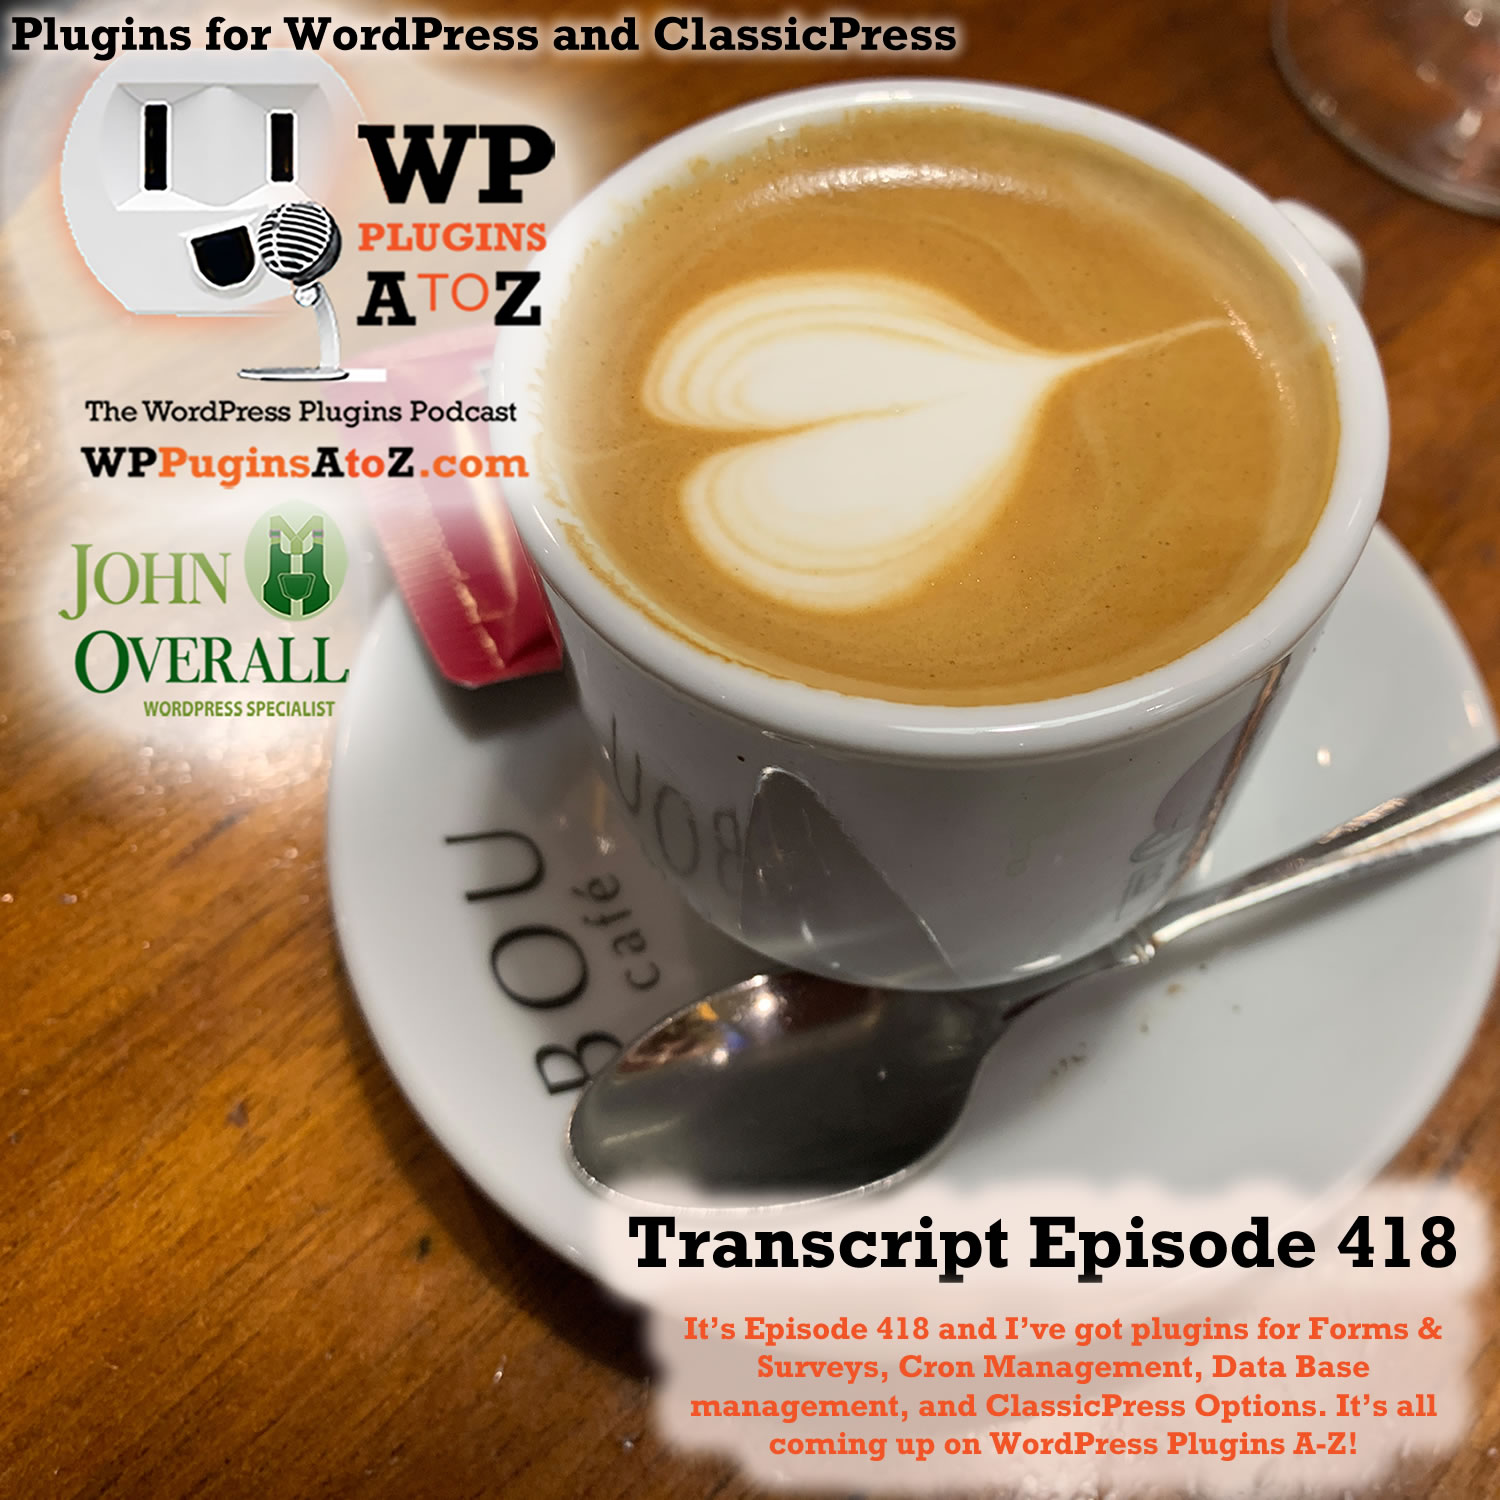 It's Episode 418 and I've got plugins for Forms & Surveys, Cron Management, Data Base management, and ClassicPress Options, all coming up on WordPress Plugins A-Z!